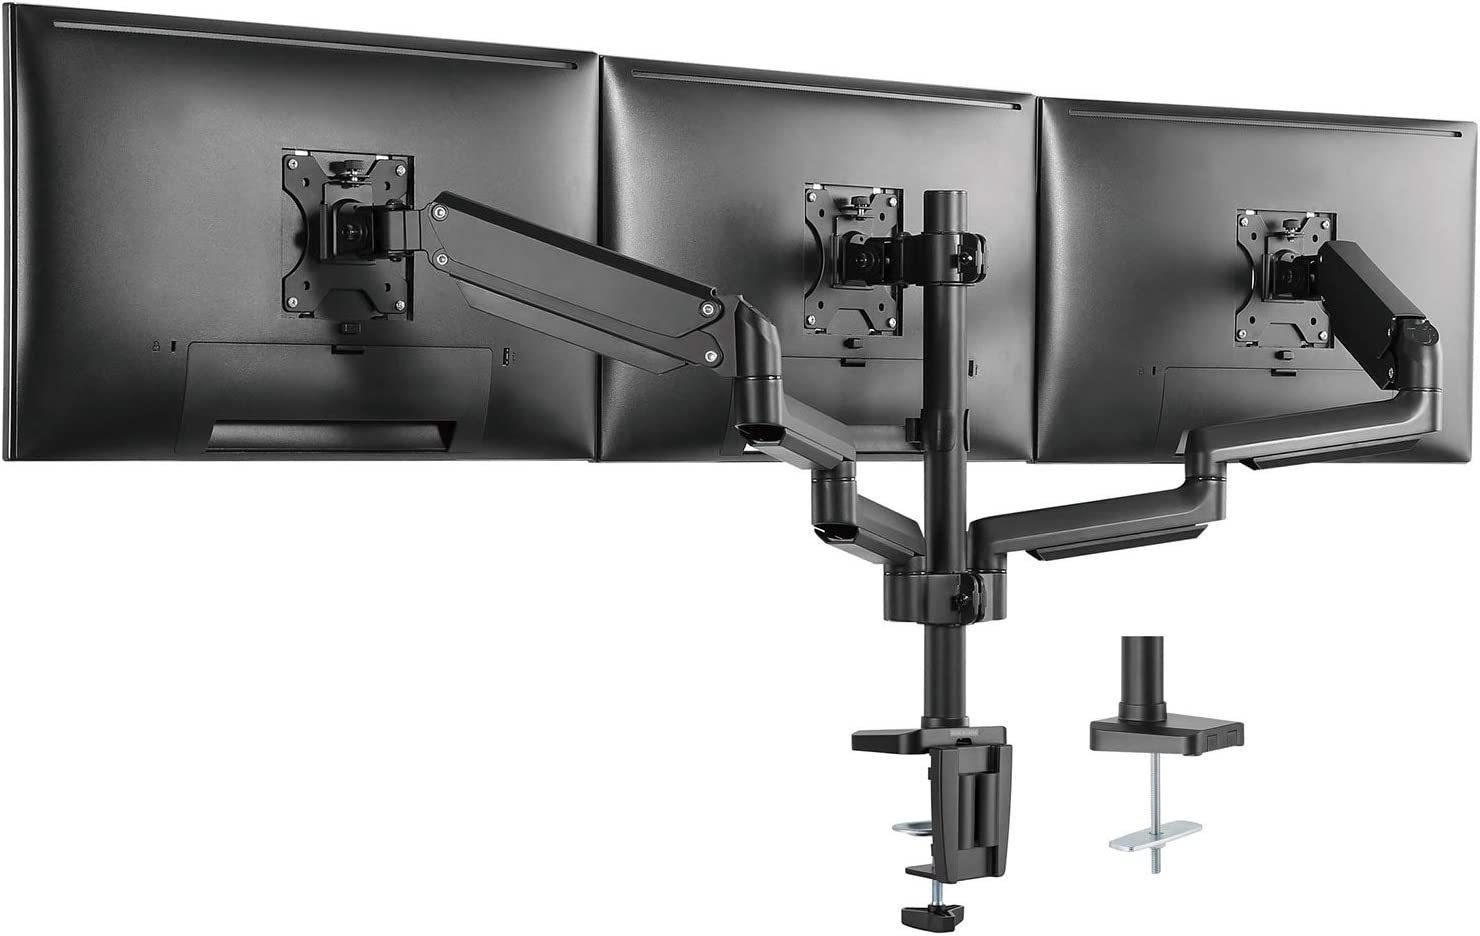 WALI GSDM003 Premium Triple LCD Monitor Desk Mount Fully Adjustable Gas Spring Stand for Display up to 27 inch, 15.4lbs Weight Capacity, Triple Arm, Black